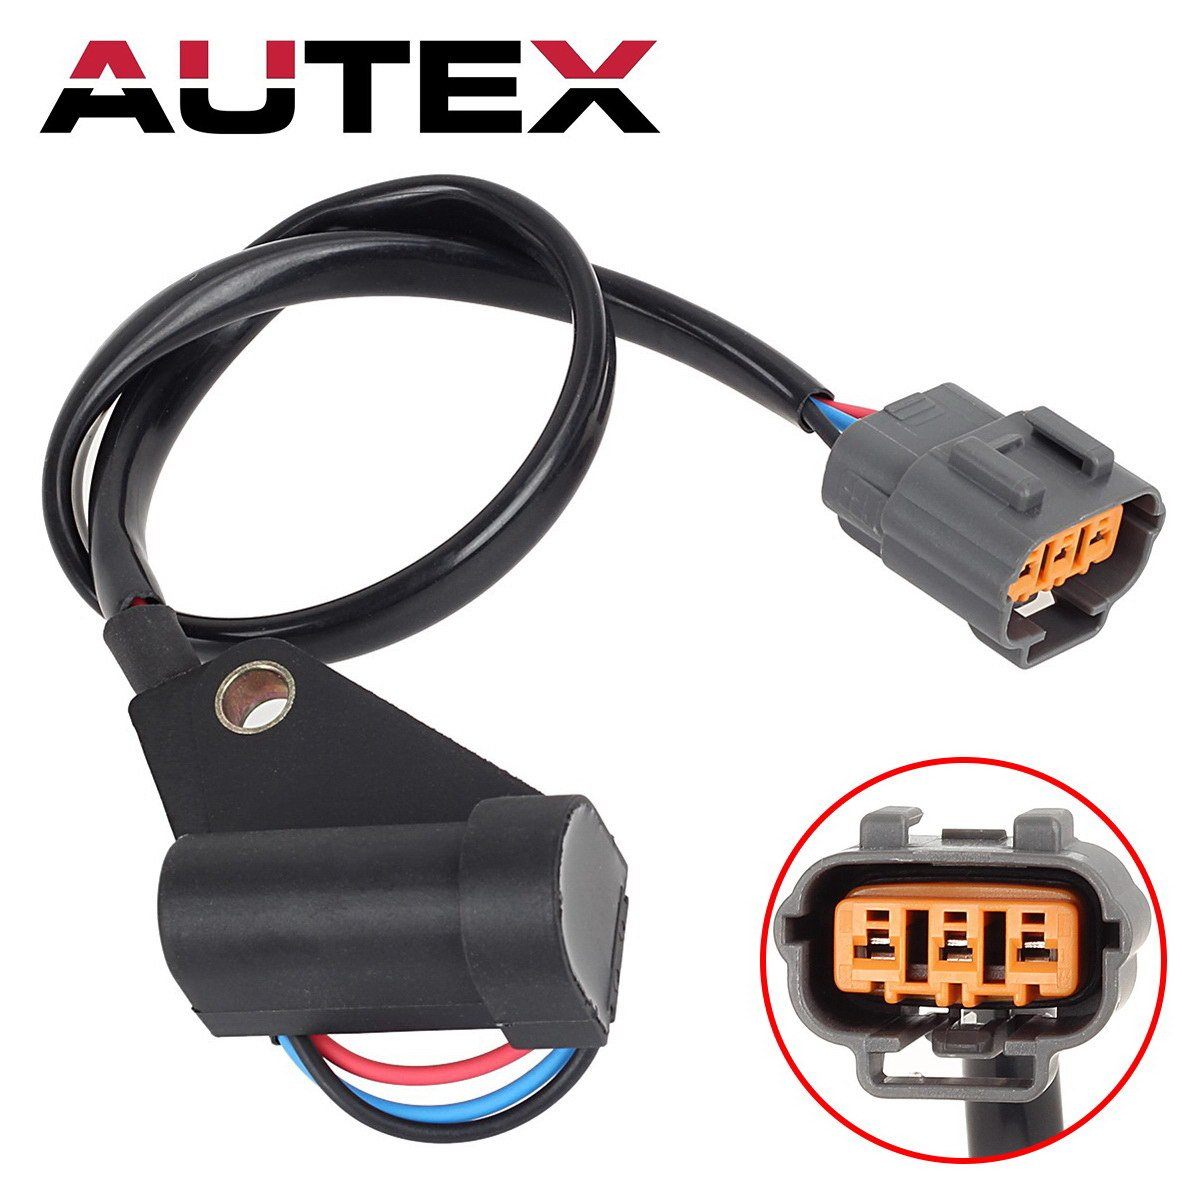 AUTEX Crankshaft Position Sensor A0031537428 PC474 compatible with 1999-1996 Mercedes-Benz S600 S320 S420 S500 C230 E320 E420 S430 SL320 SL500 SL60 AMG SL600 SLK230